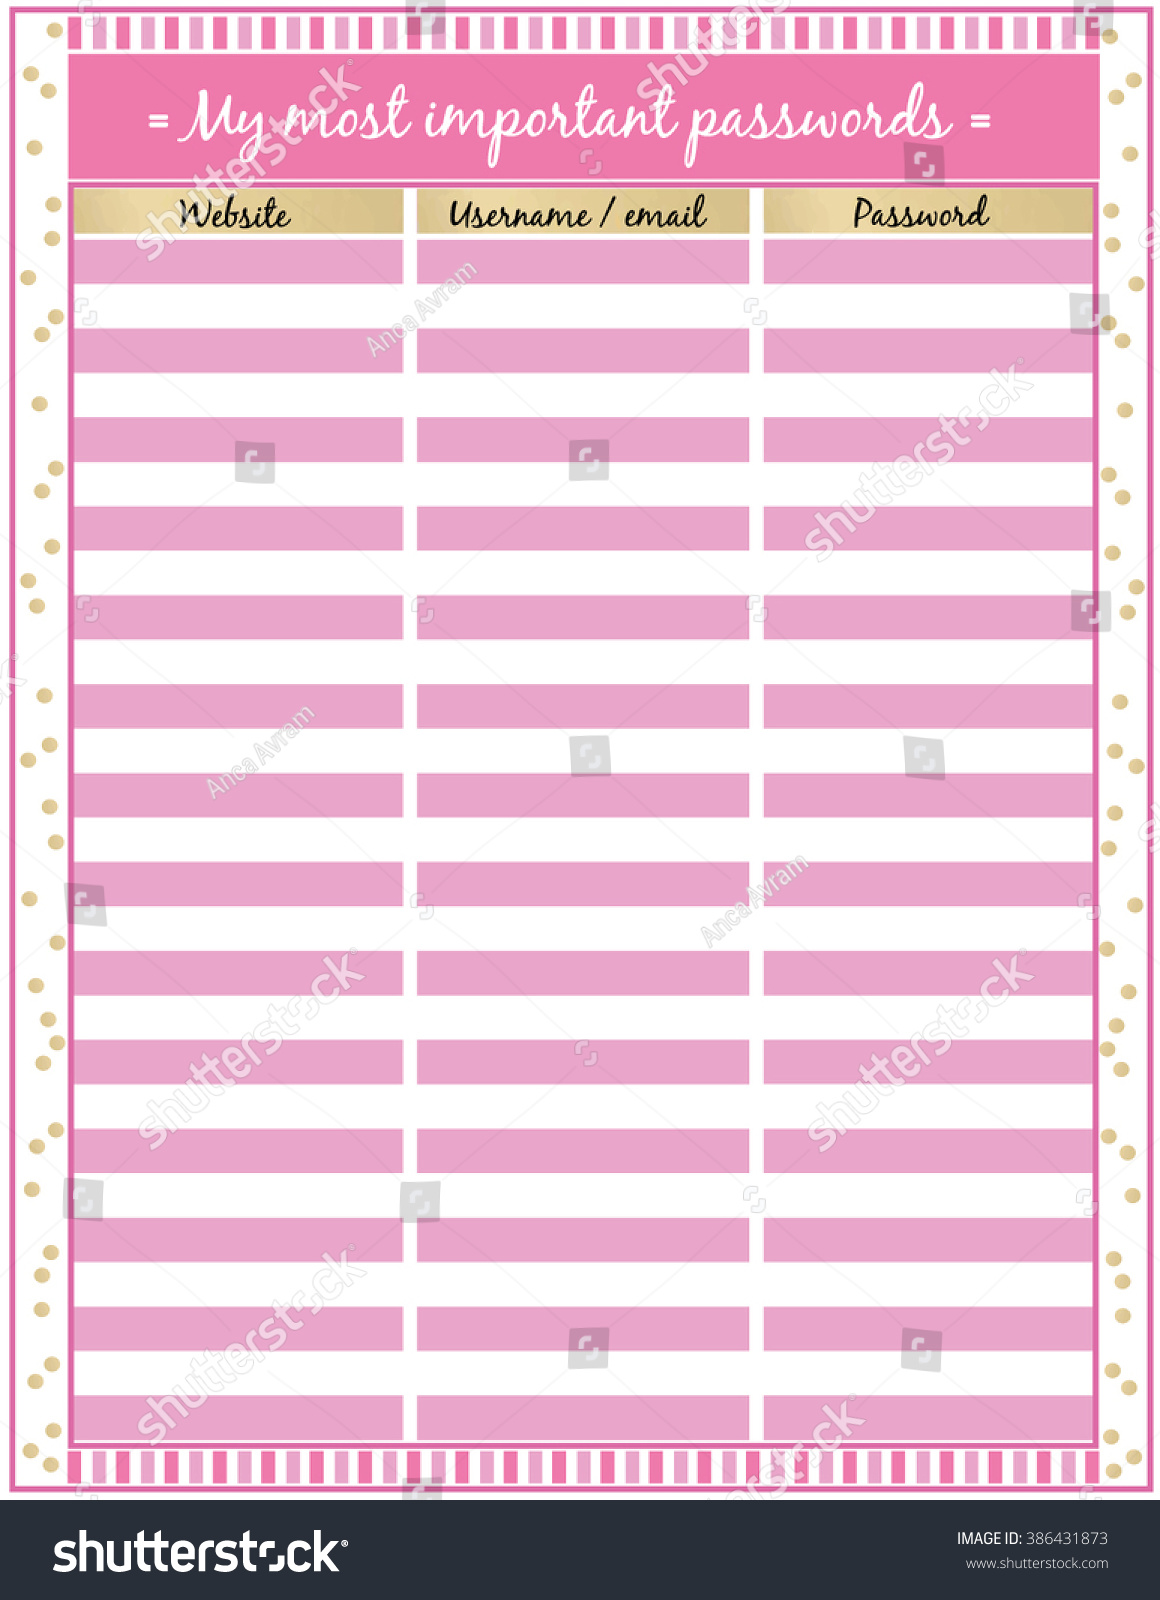 photo relating to Password Sheet Printable titled pword sheet -